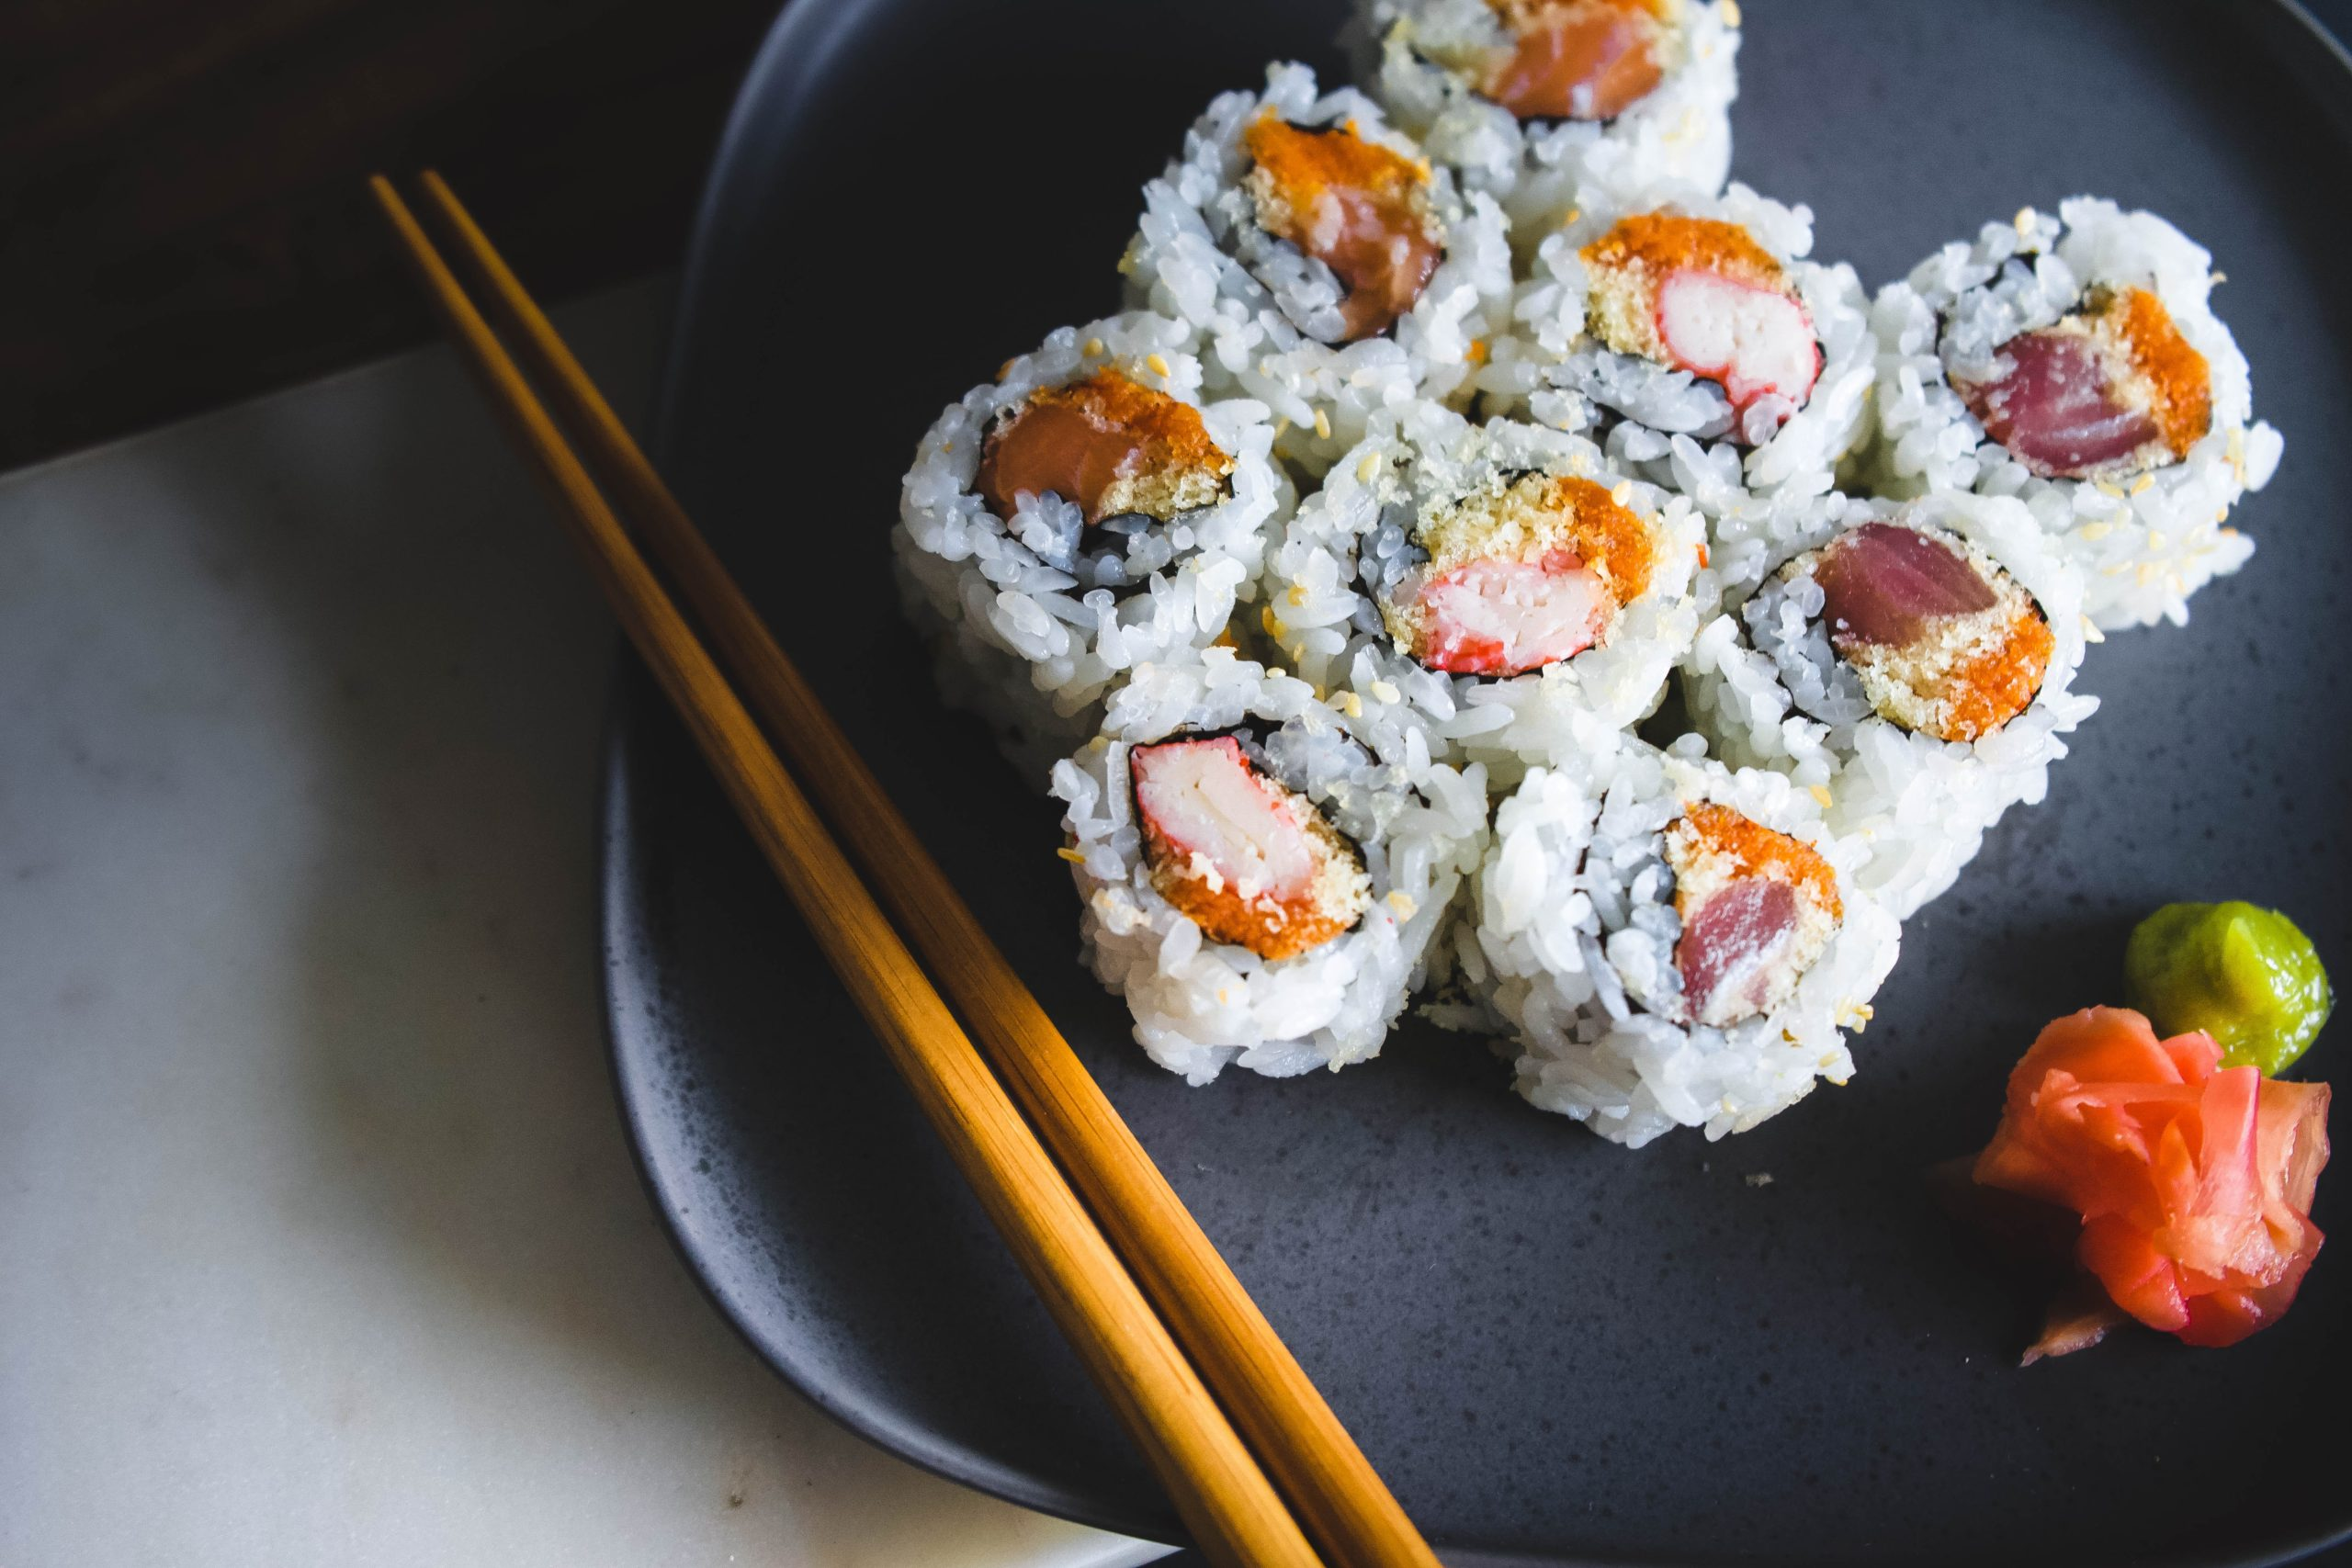 A spicy tuna sushi roll on a plate with chopsticks.